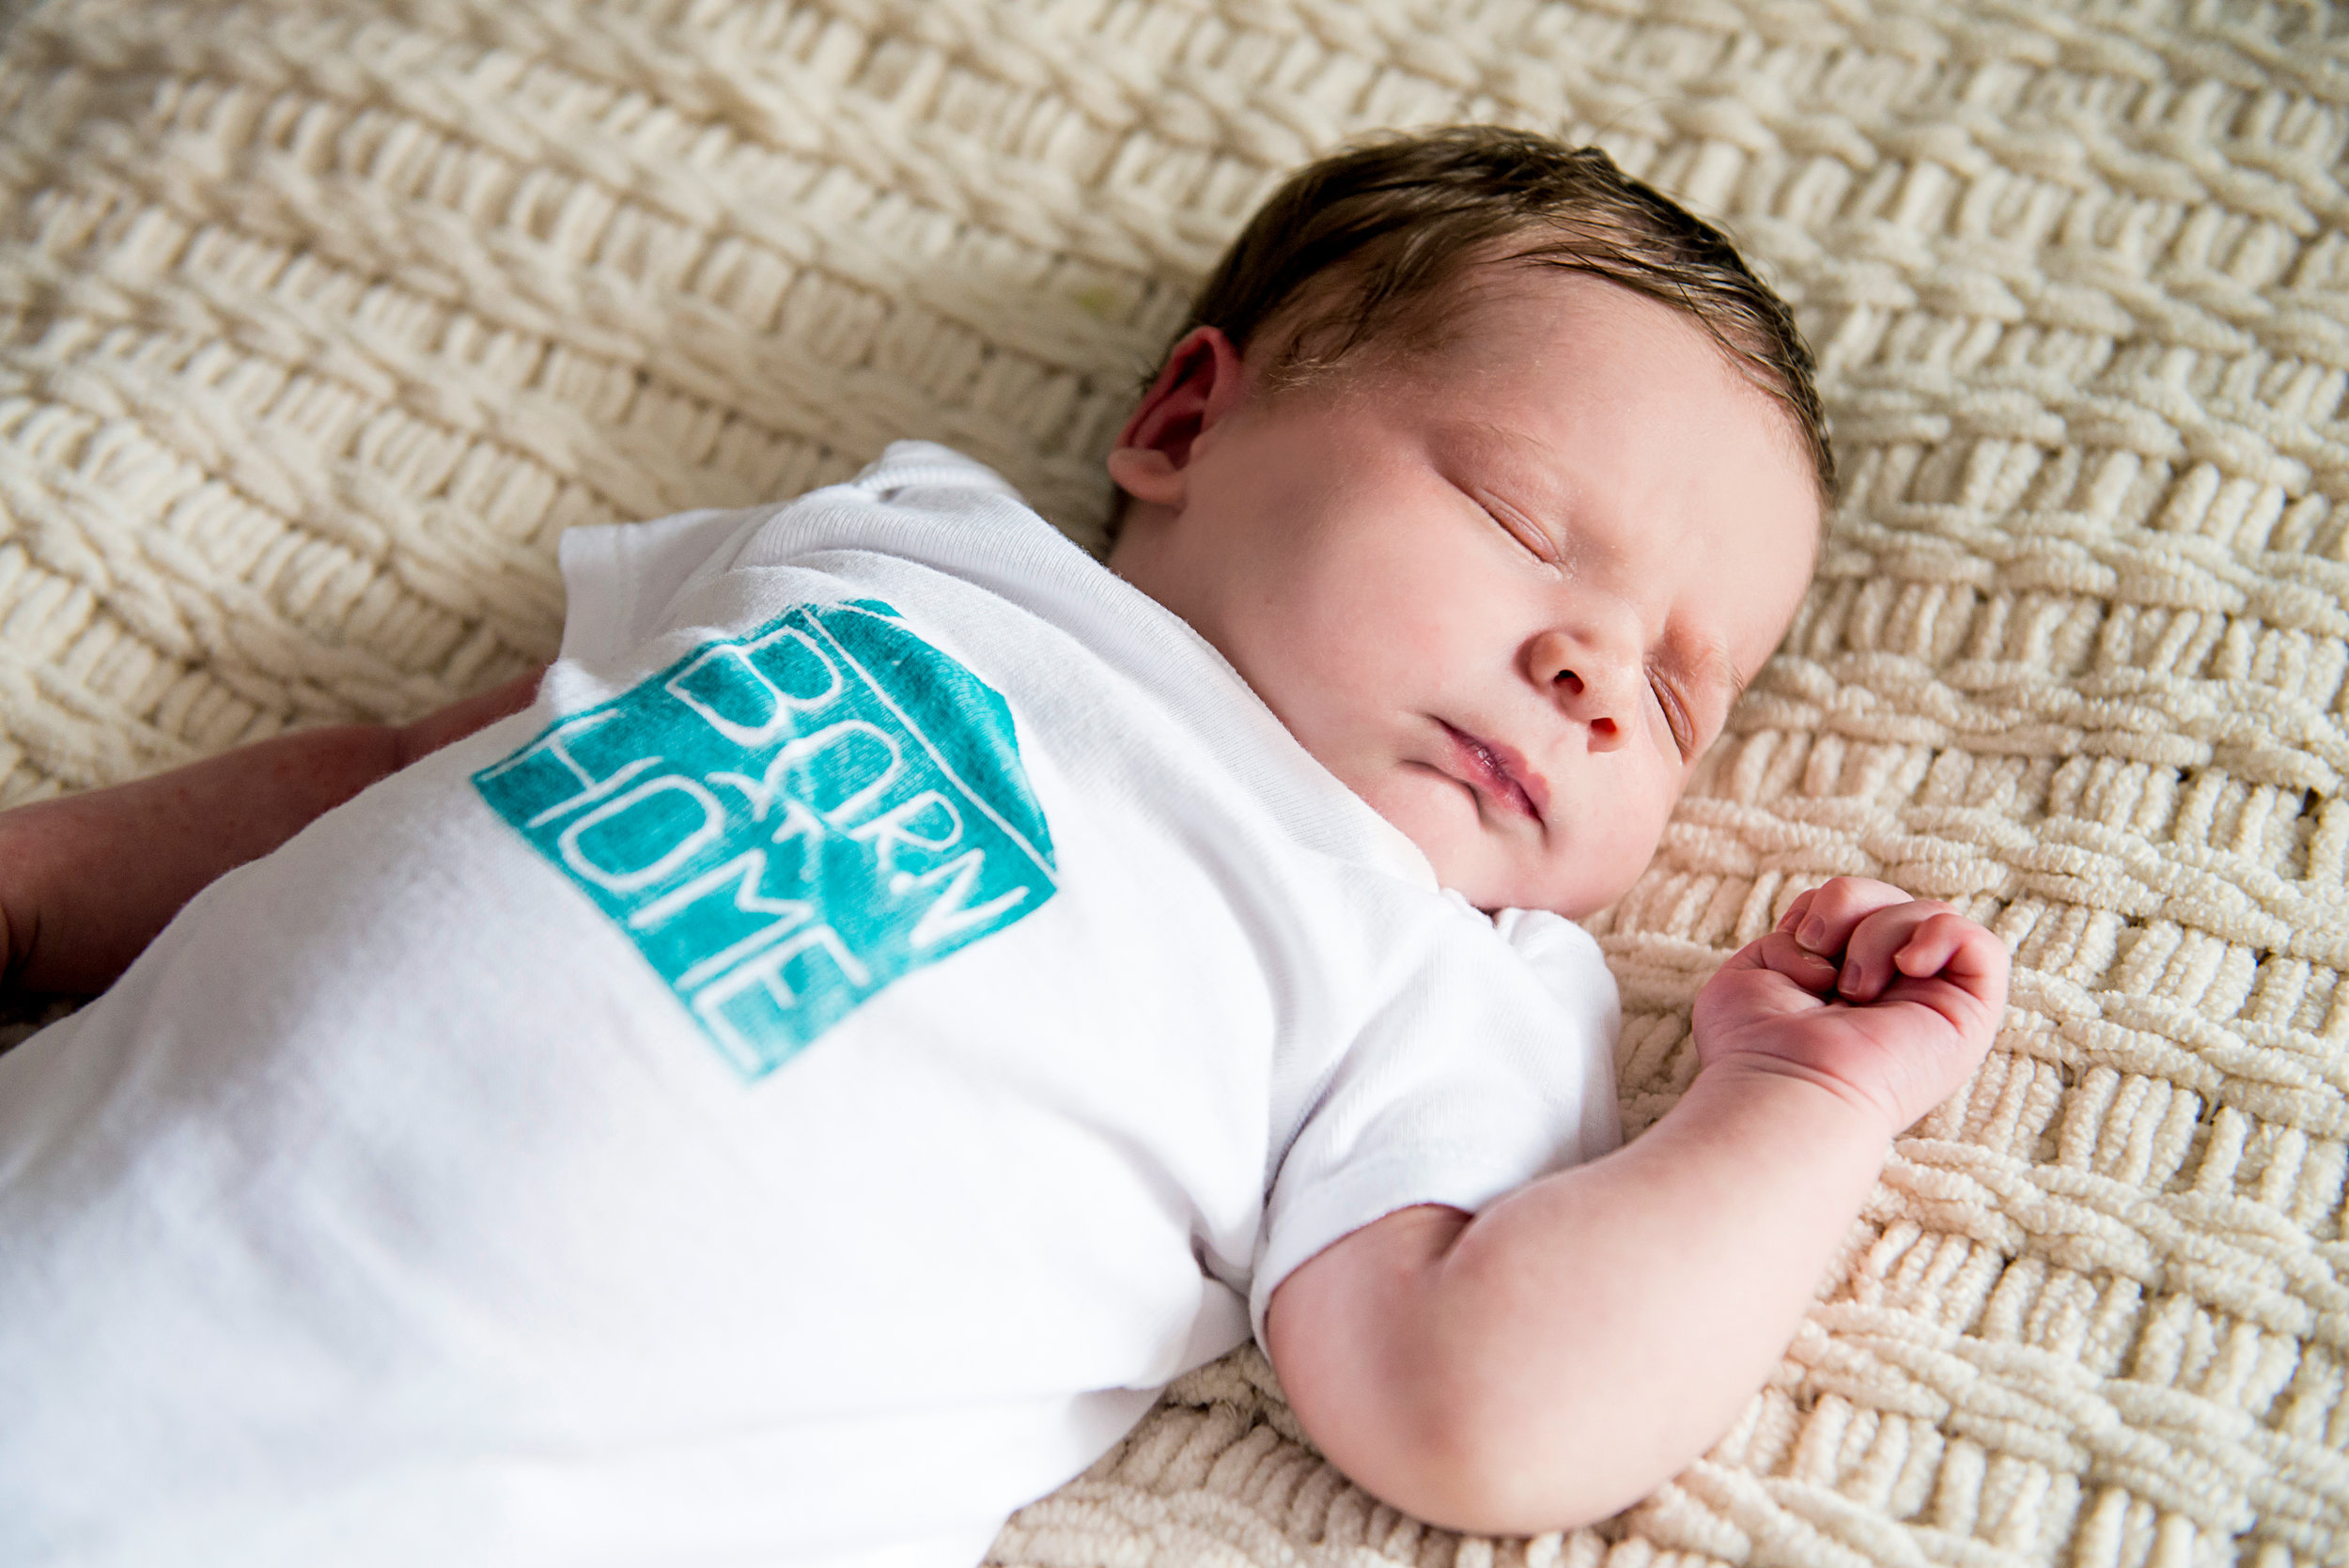 broward-county-newborn-photographer_38.jpg